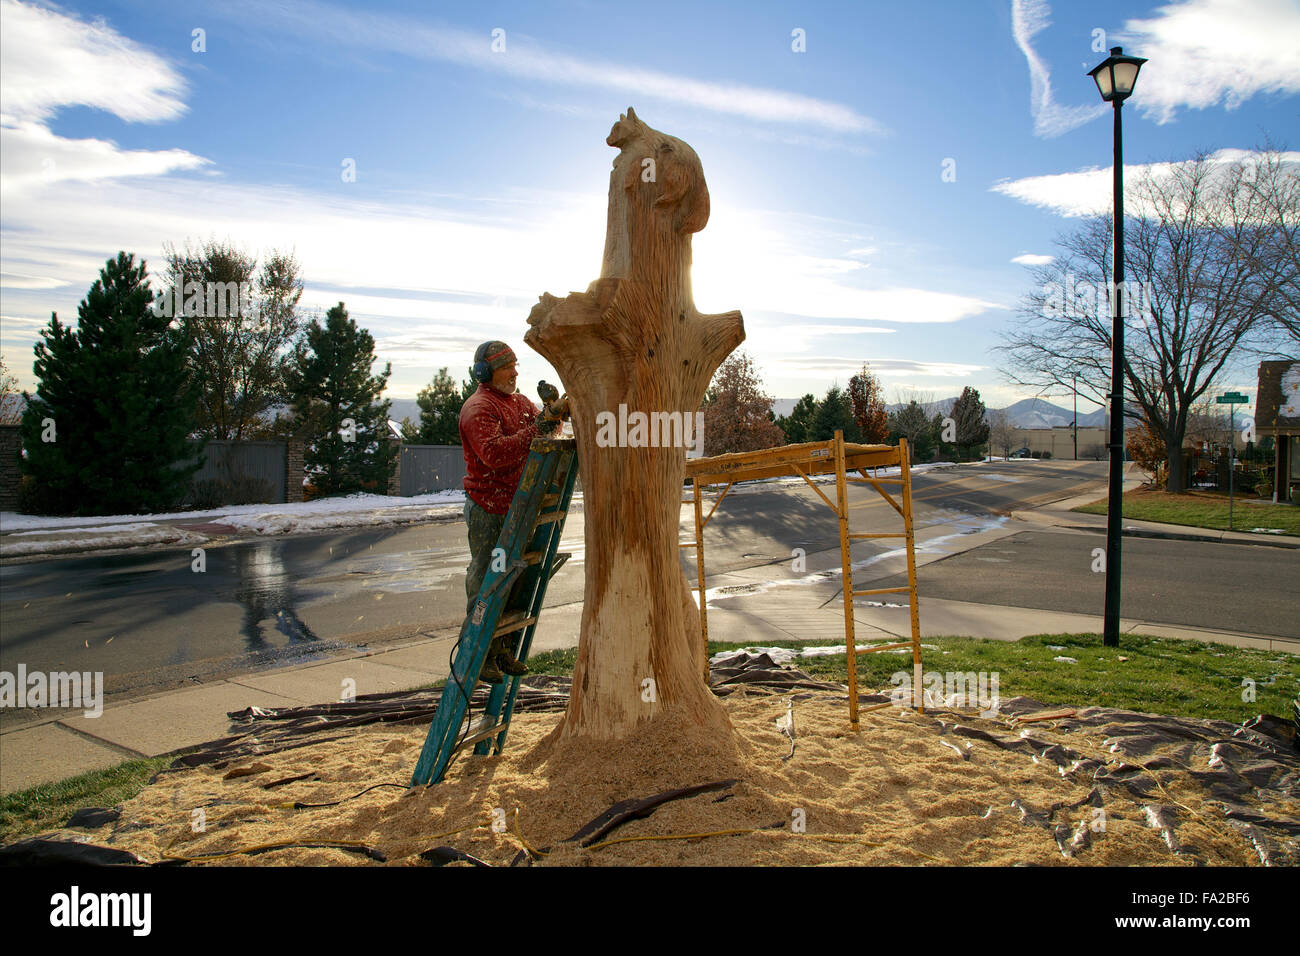 Wood carver sculpting a tall tree stump - Stock Image